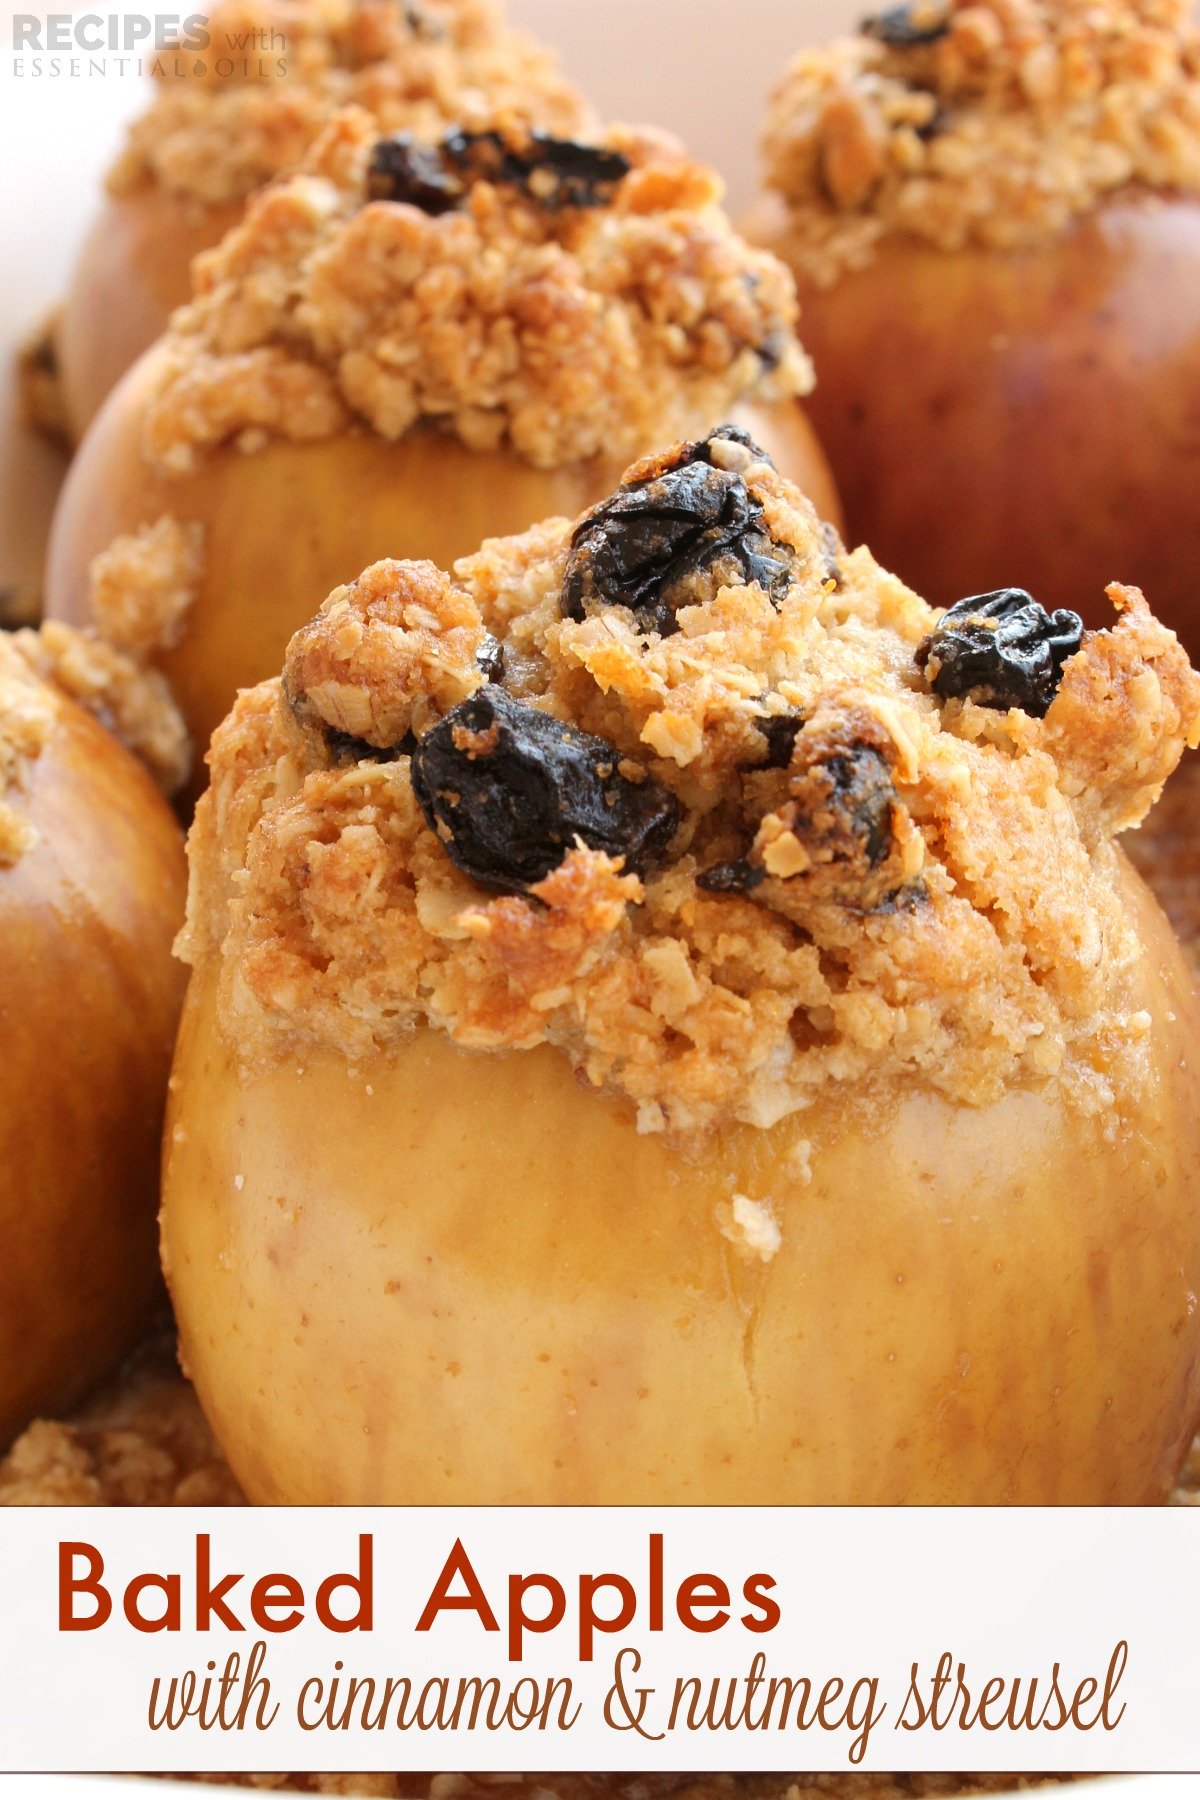 Baked Apples with Cinnamon & Nutmeg Streusel - Recipes ...